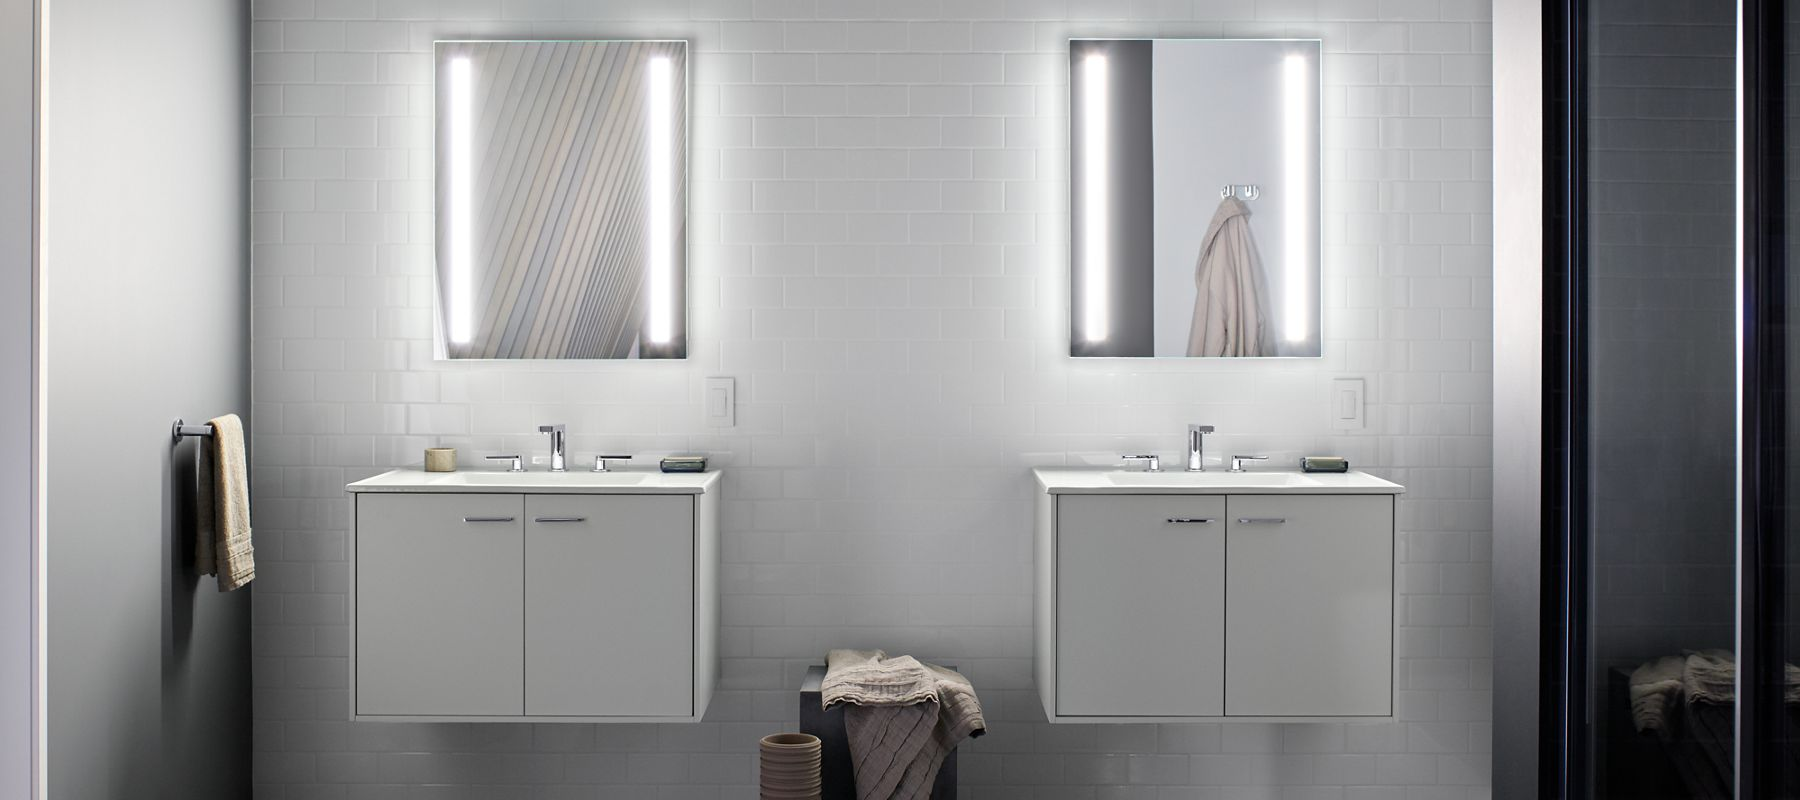 Bathroom Mirror Cabinets New Zealand bathroom medicine cabinets, other furniture & storage solution